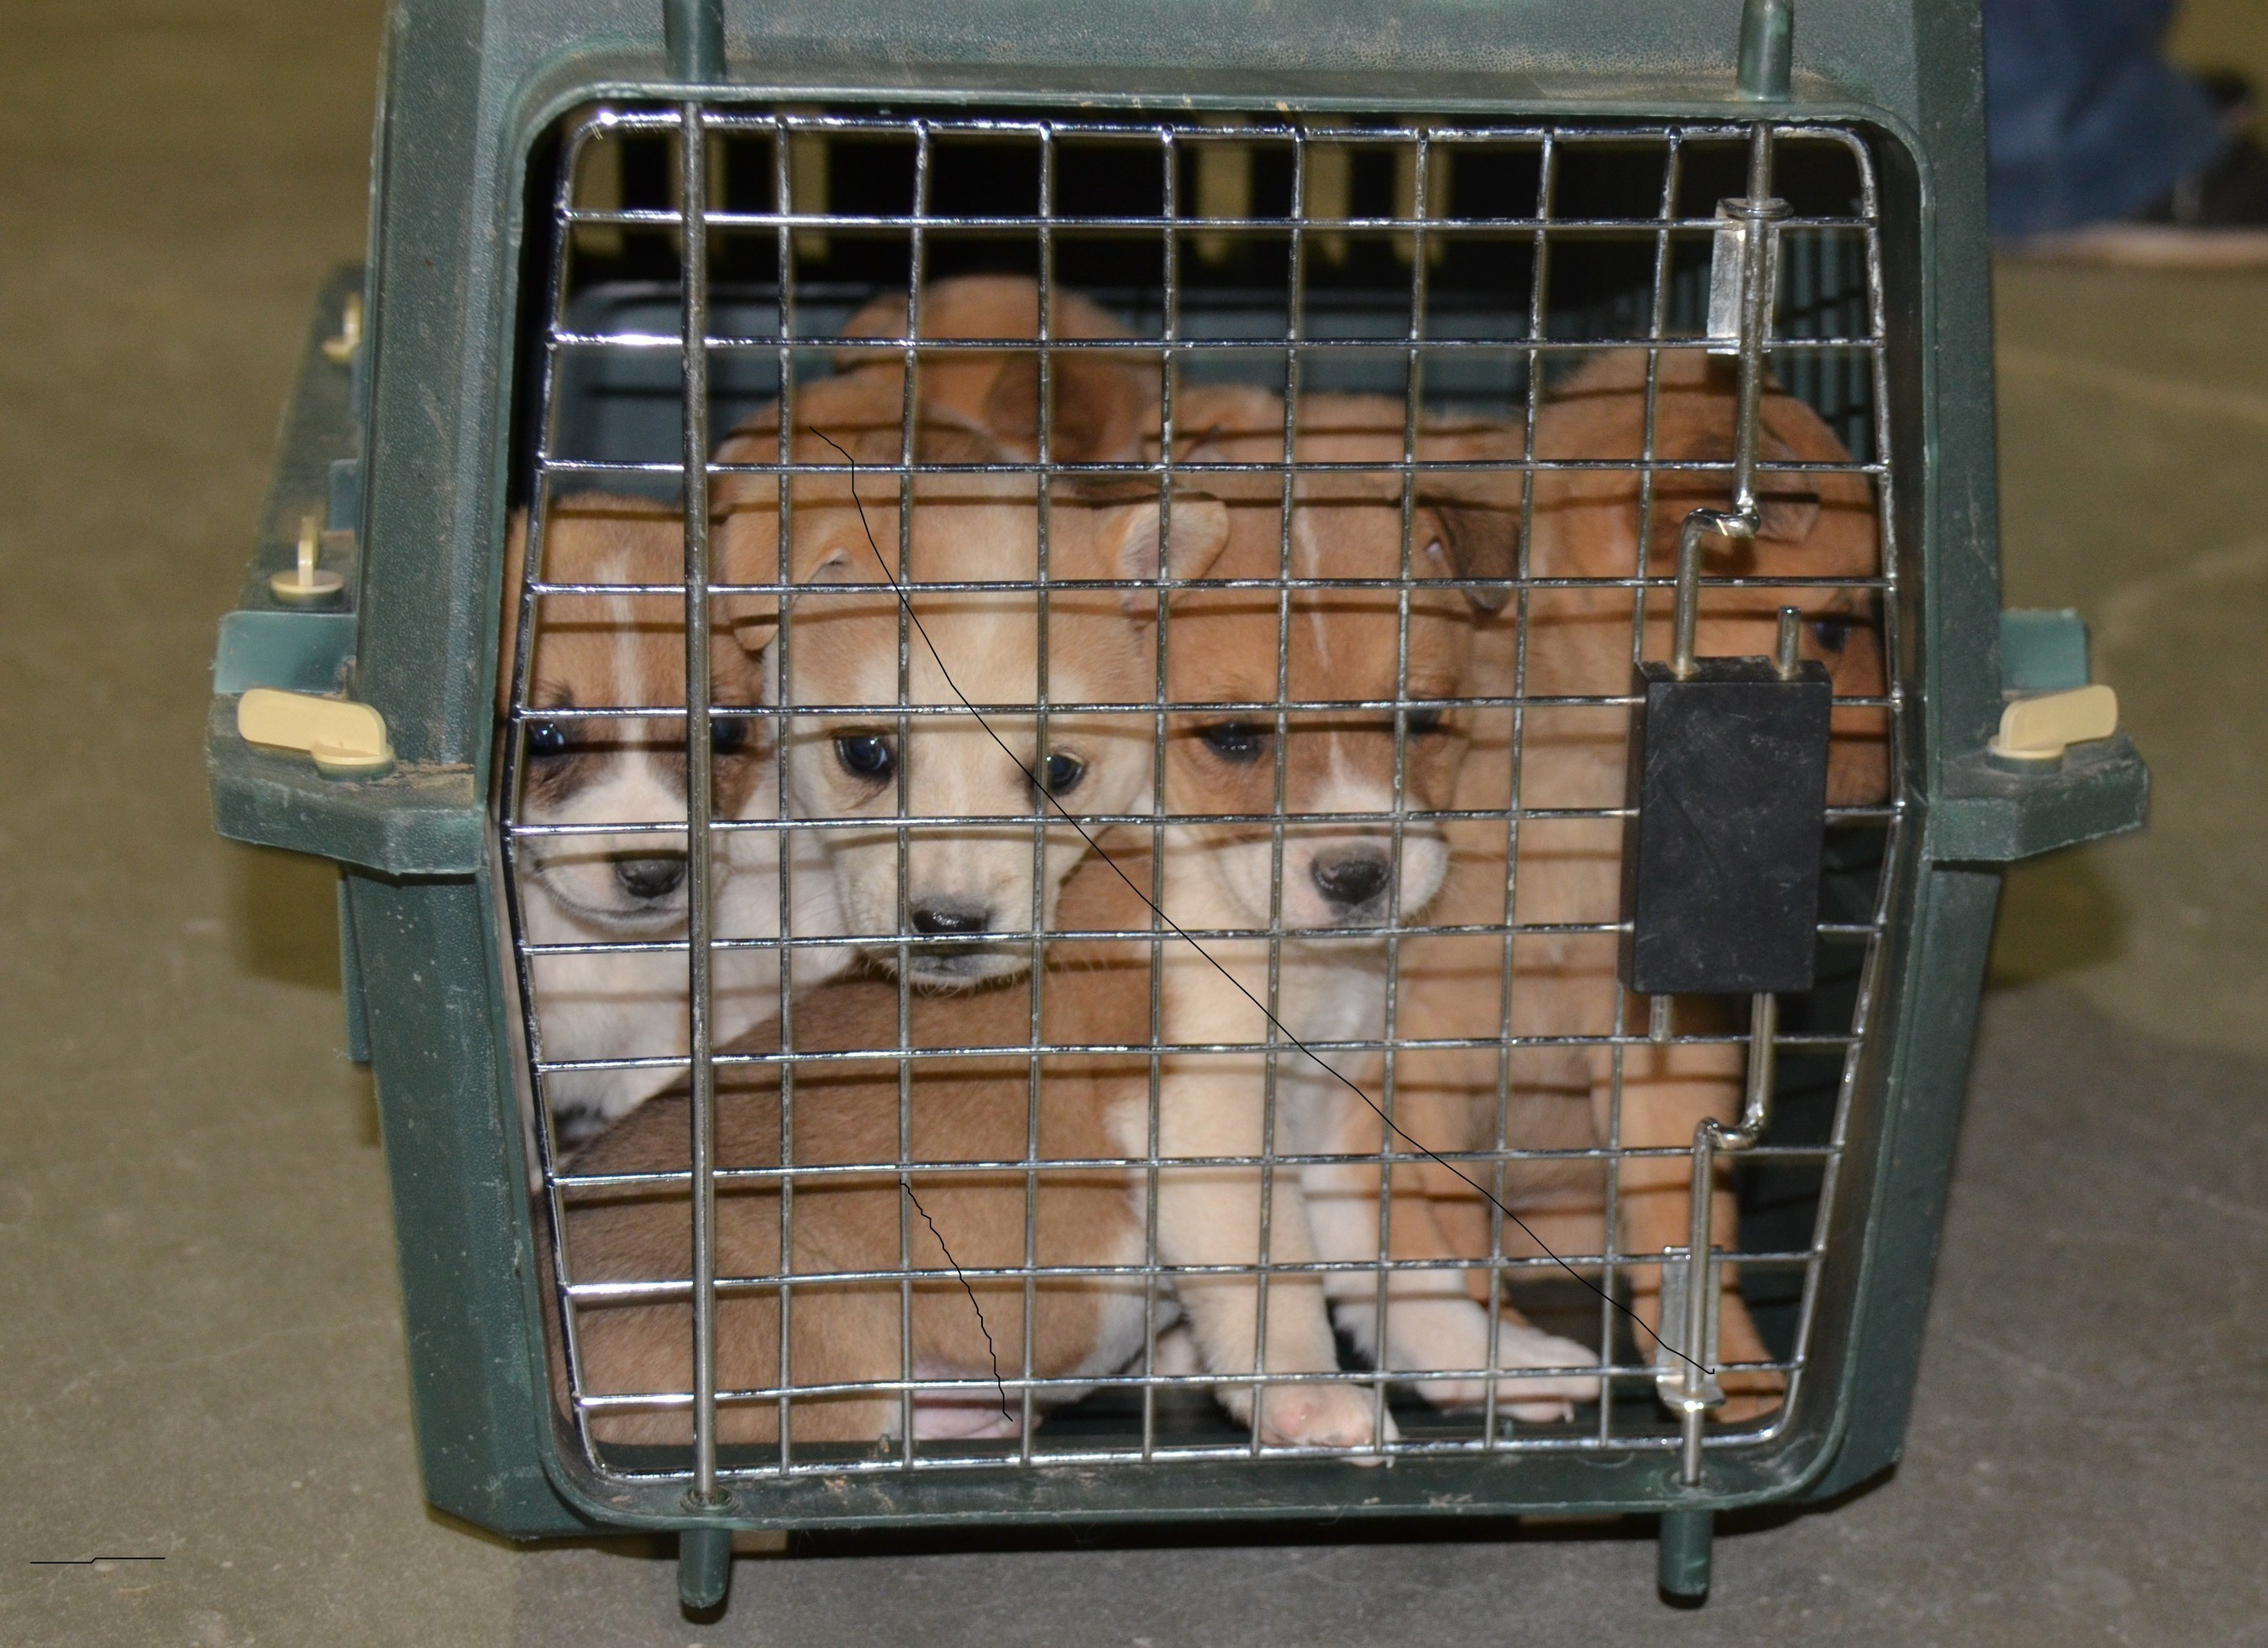 Minimal access to veterinary care has led to an overpopulation of dogs which in turn harms animal health and welfare, public health and the human animal bond.